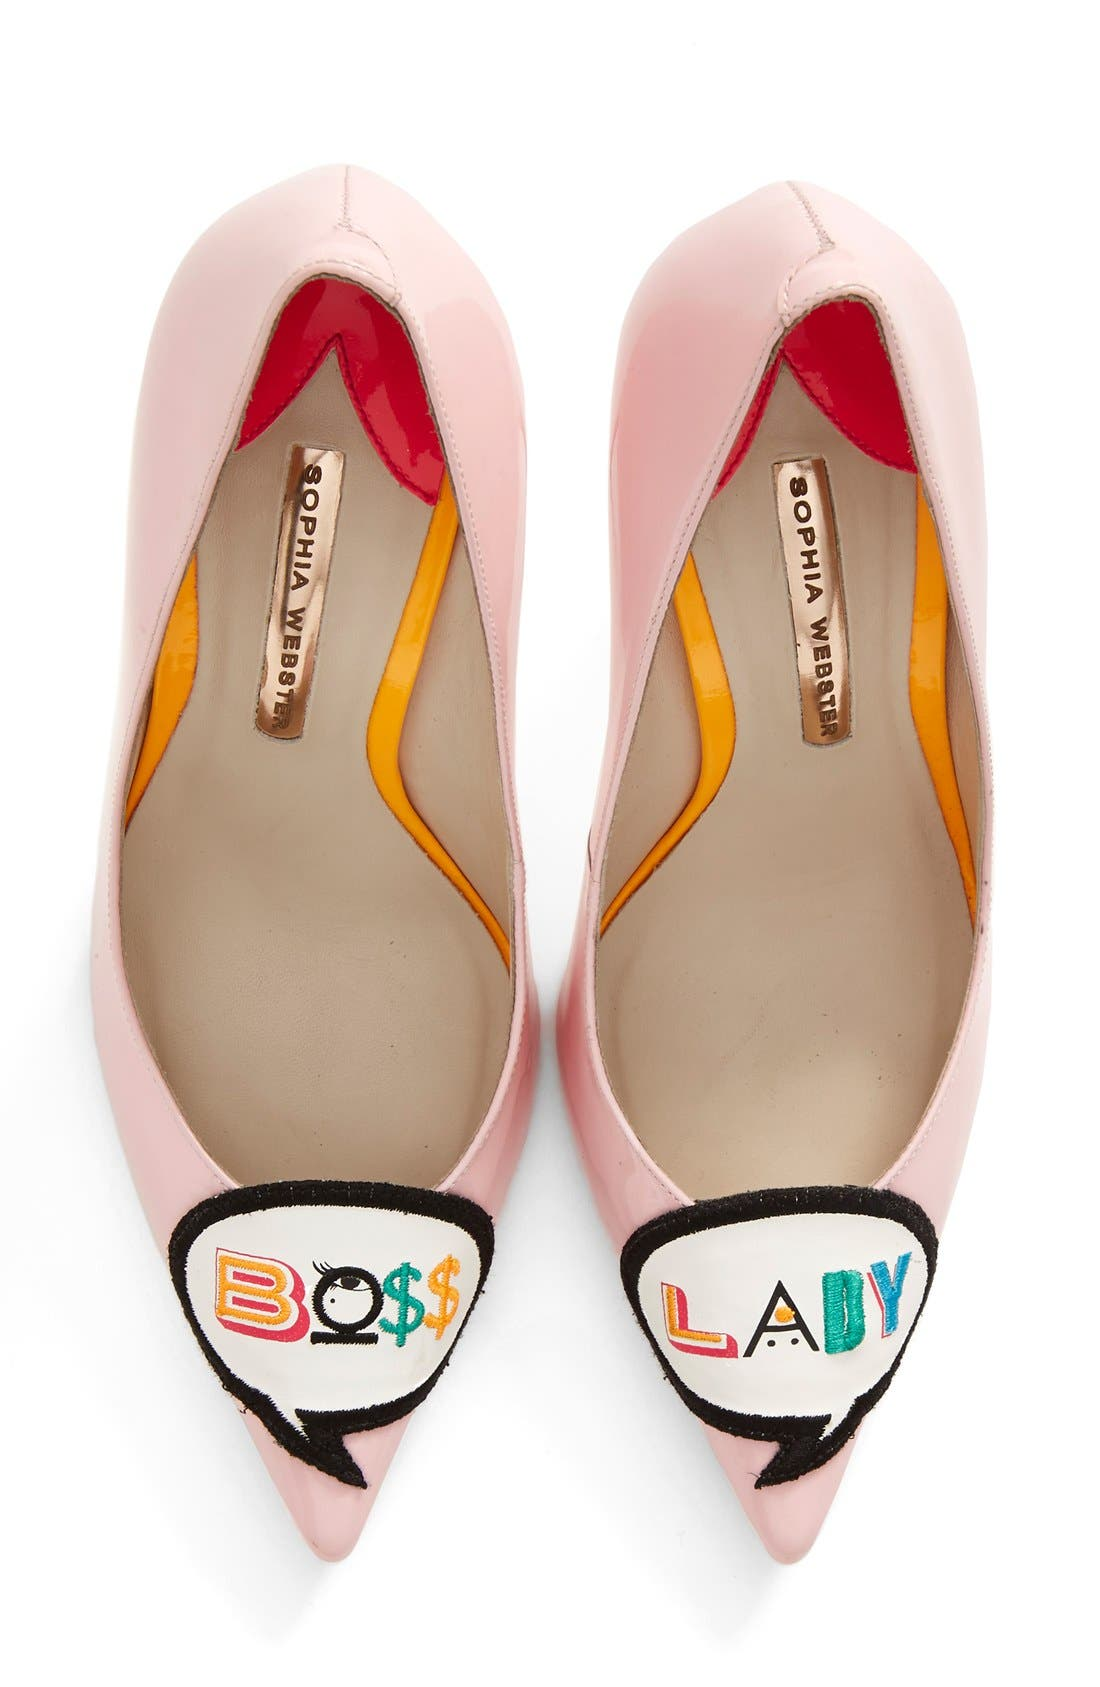 Main Image - Sophia Webster 'Boss Lady' Pointy Toe Pump (Women)